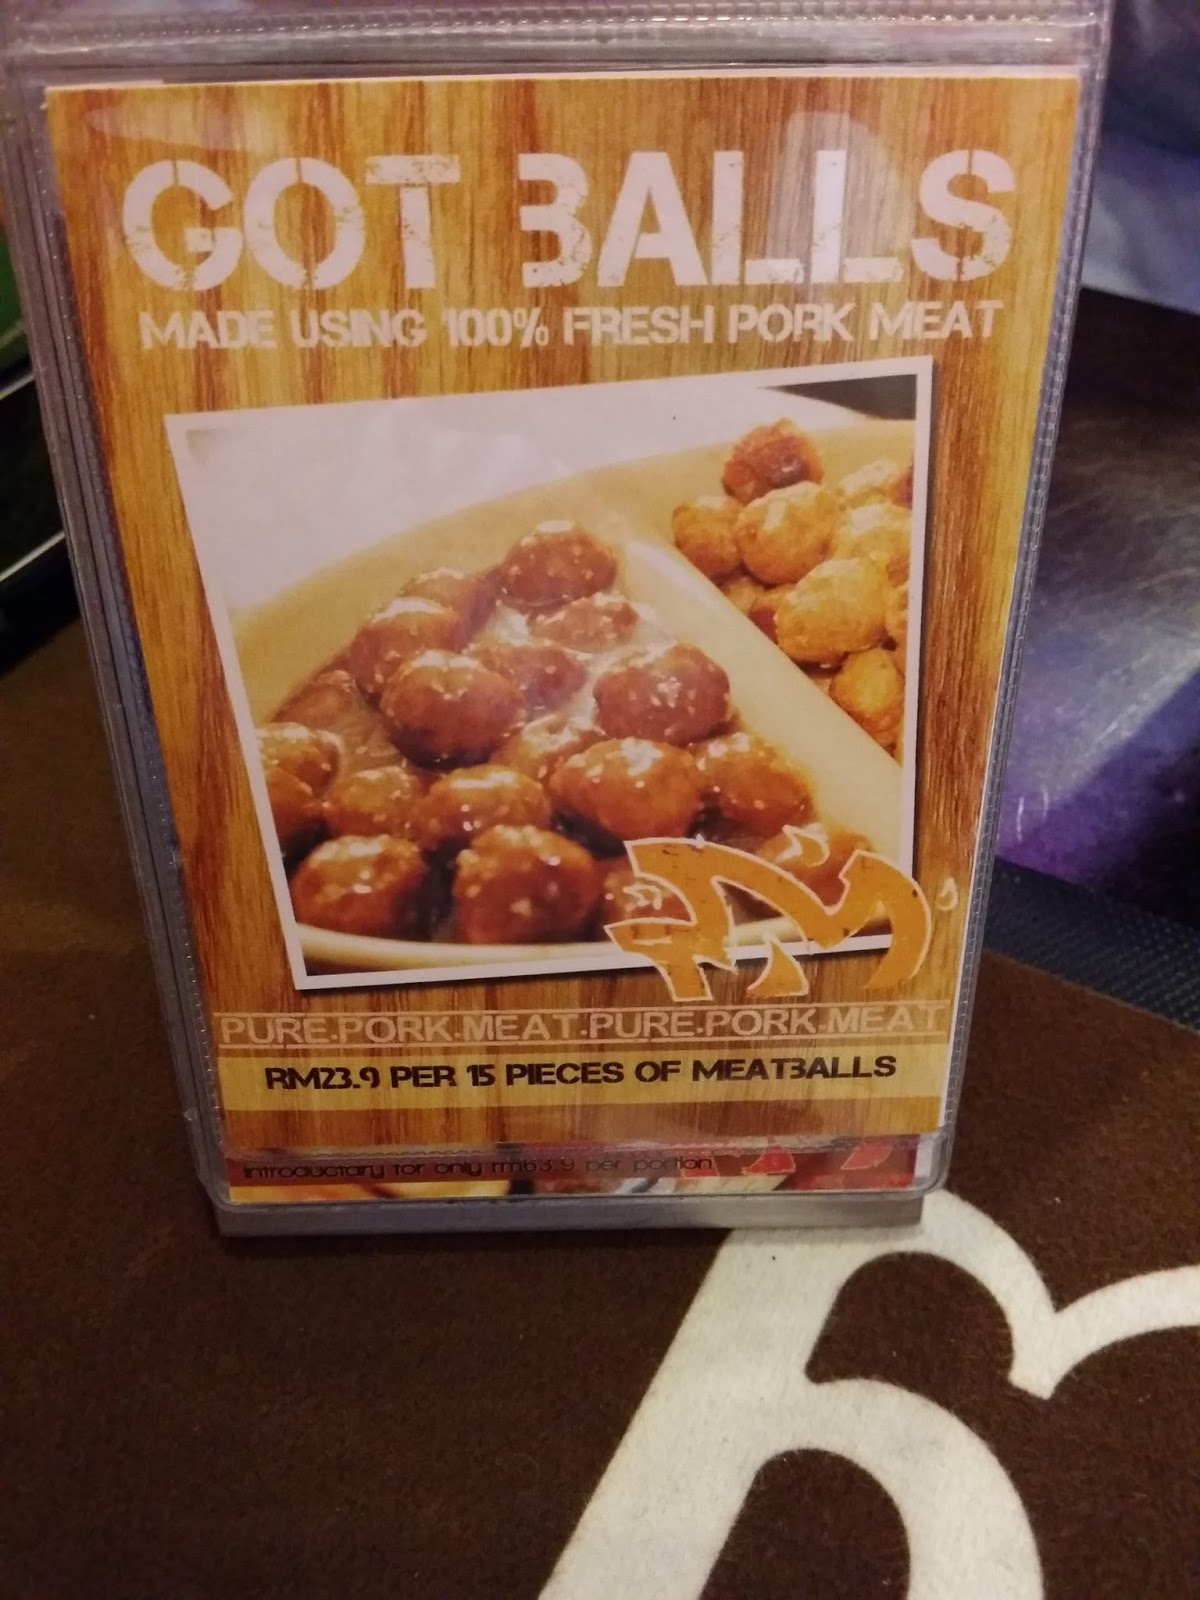 Window grille kota kinabalu - Got Balls This Looks Good Will Give It A Try Next Time